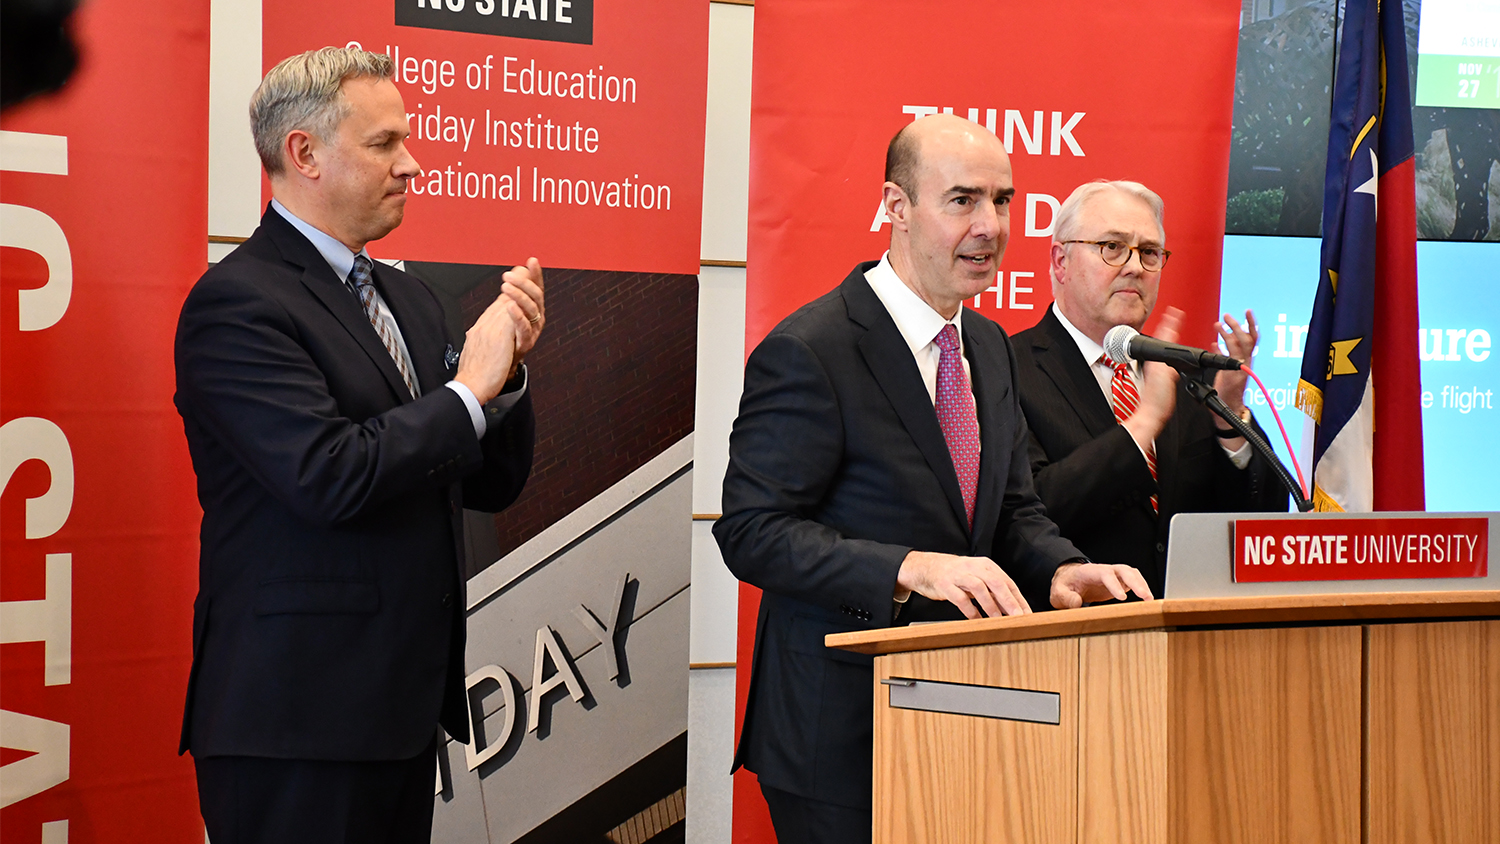 N.C. Lt Gov. Dan Forest, Labor Secretary Eugene Scalia, and NC State Chancellor Randy Woodson.